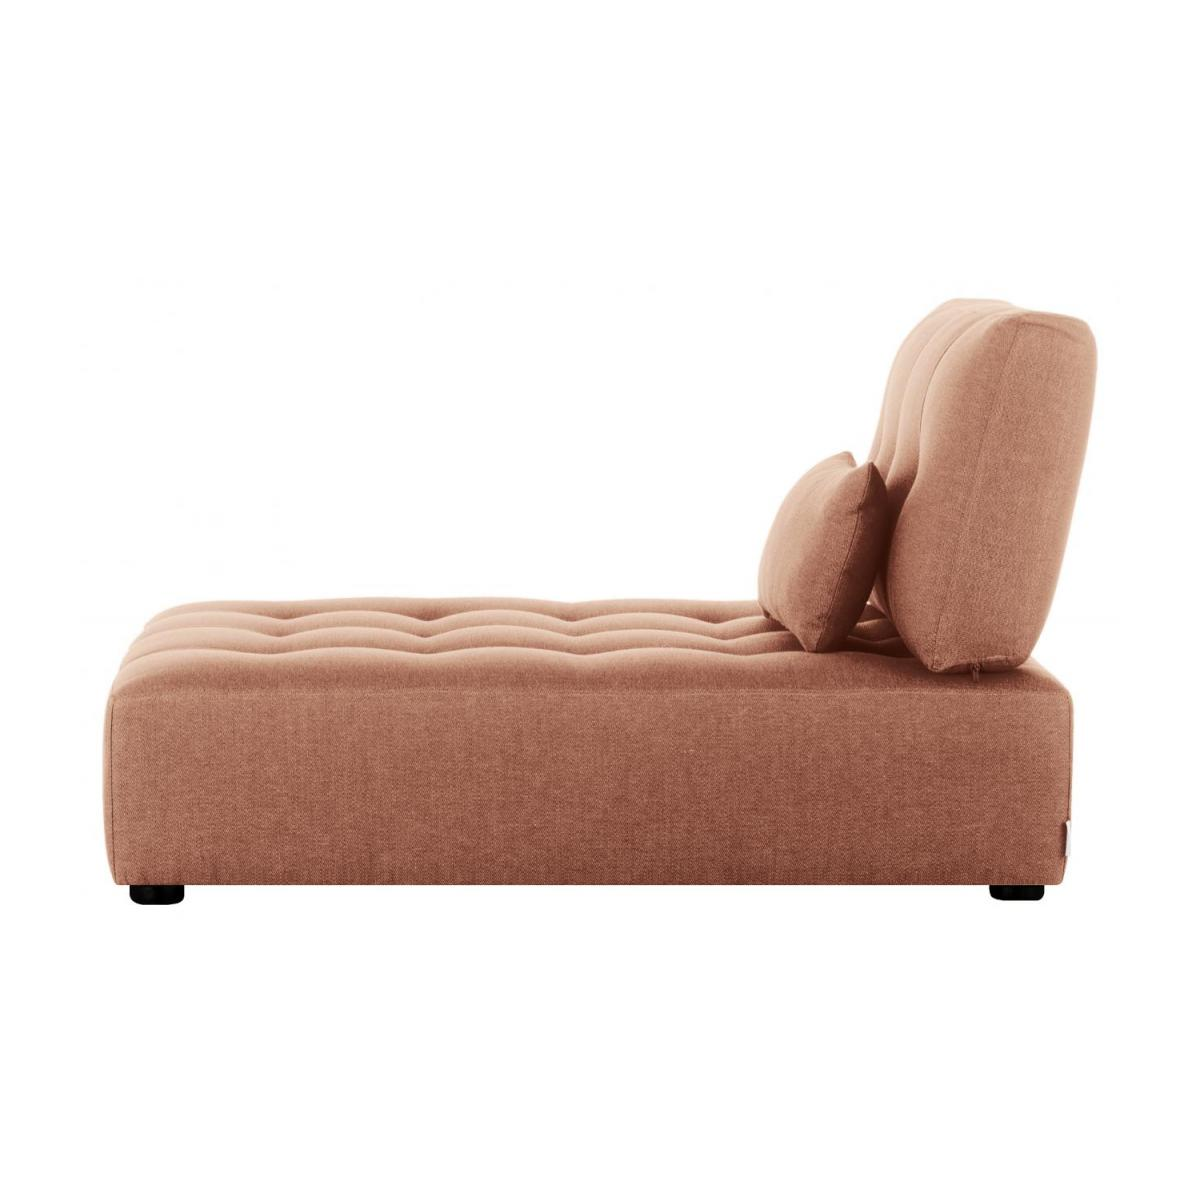 Chaiselongue-Tela-rosa n°3